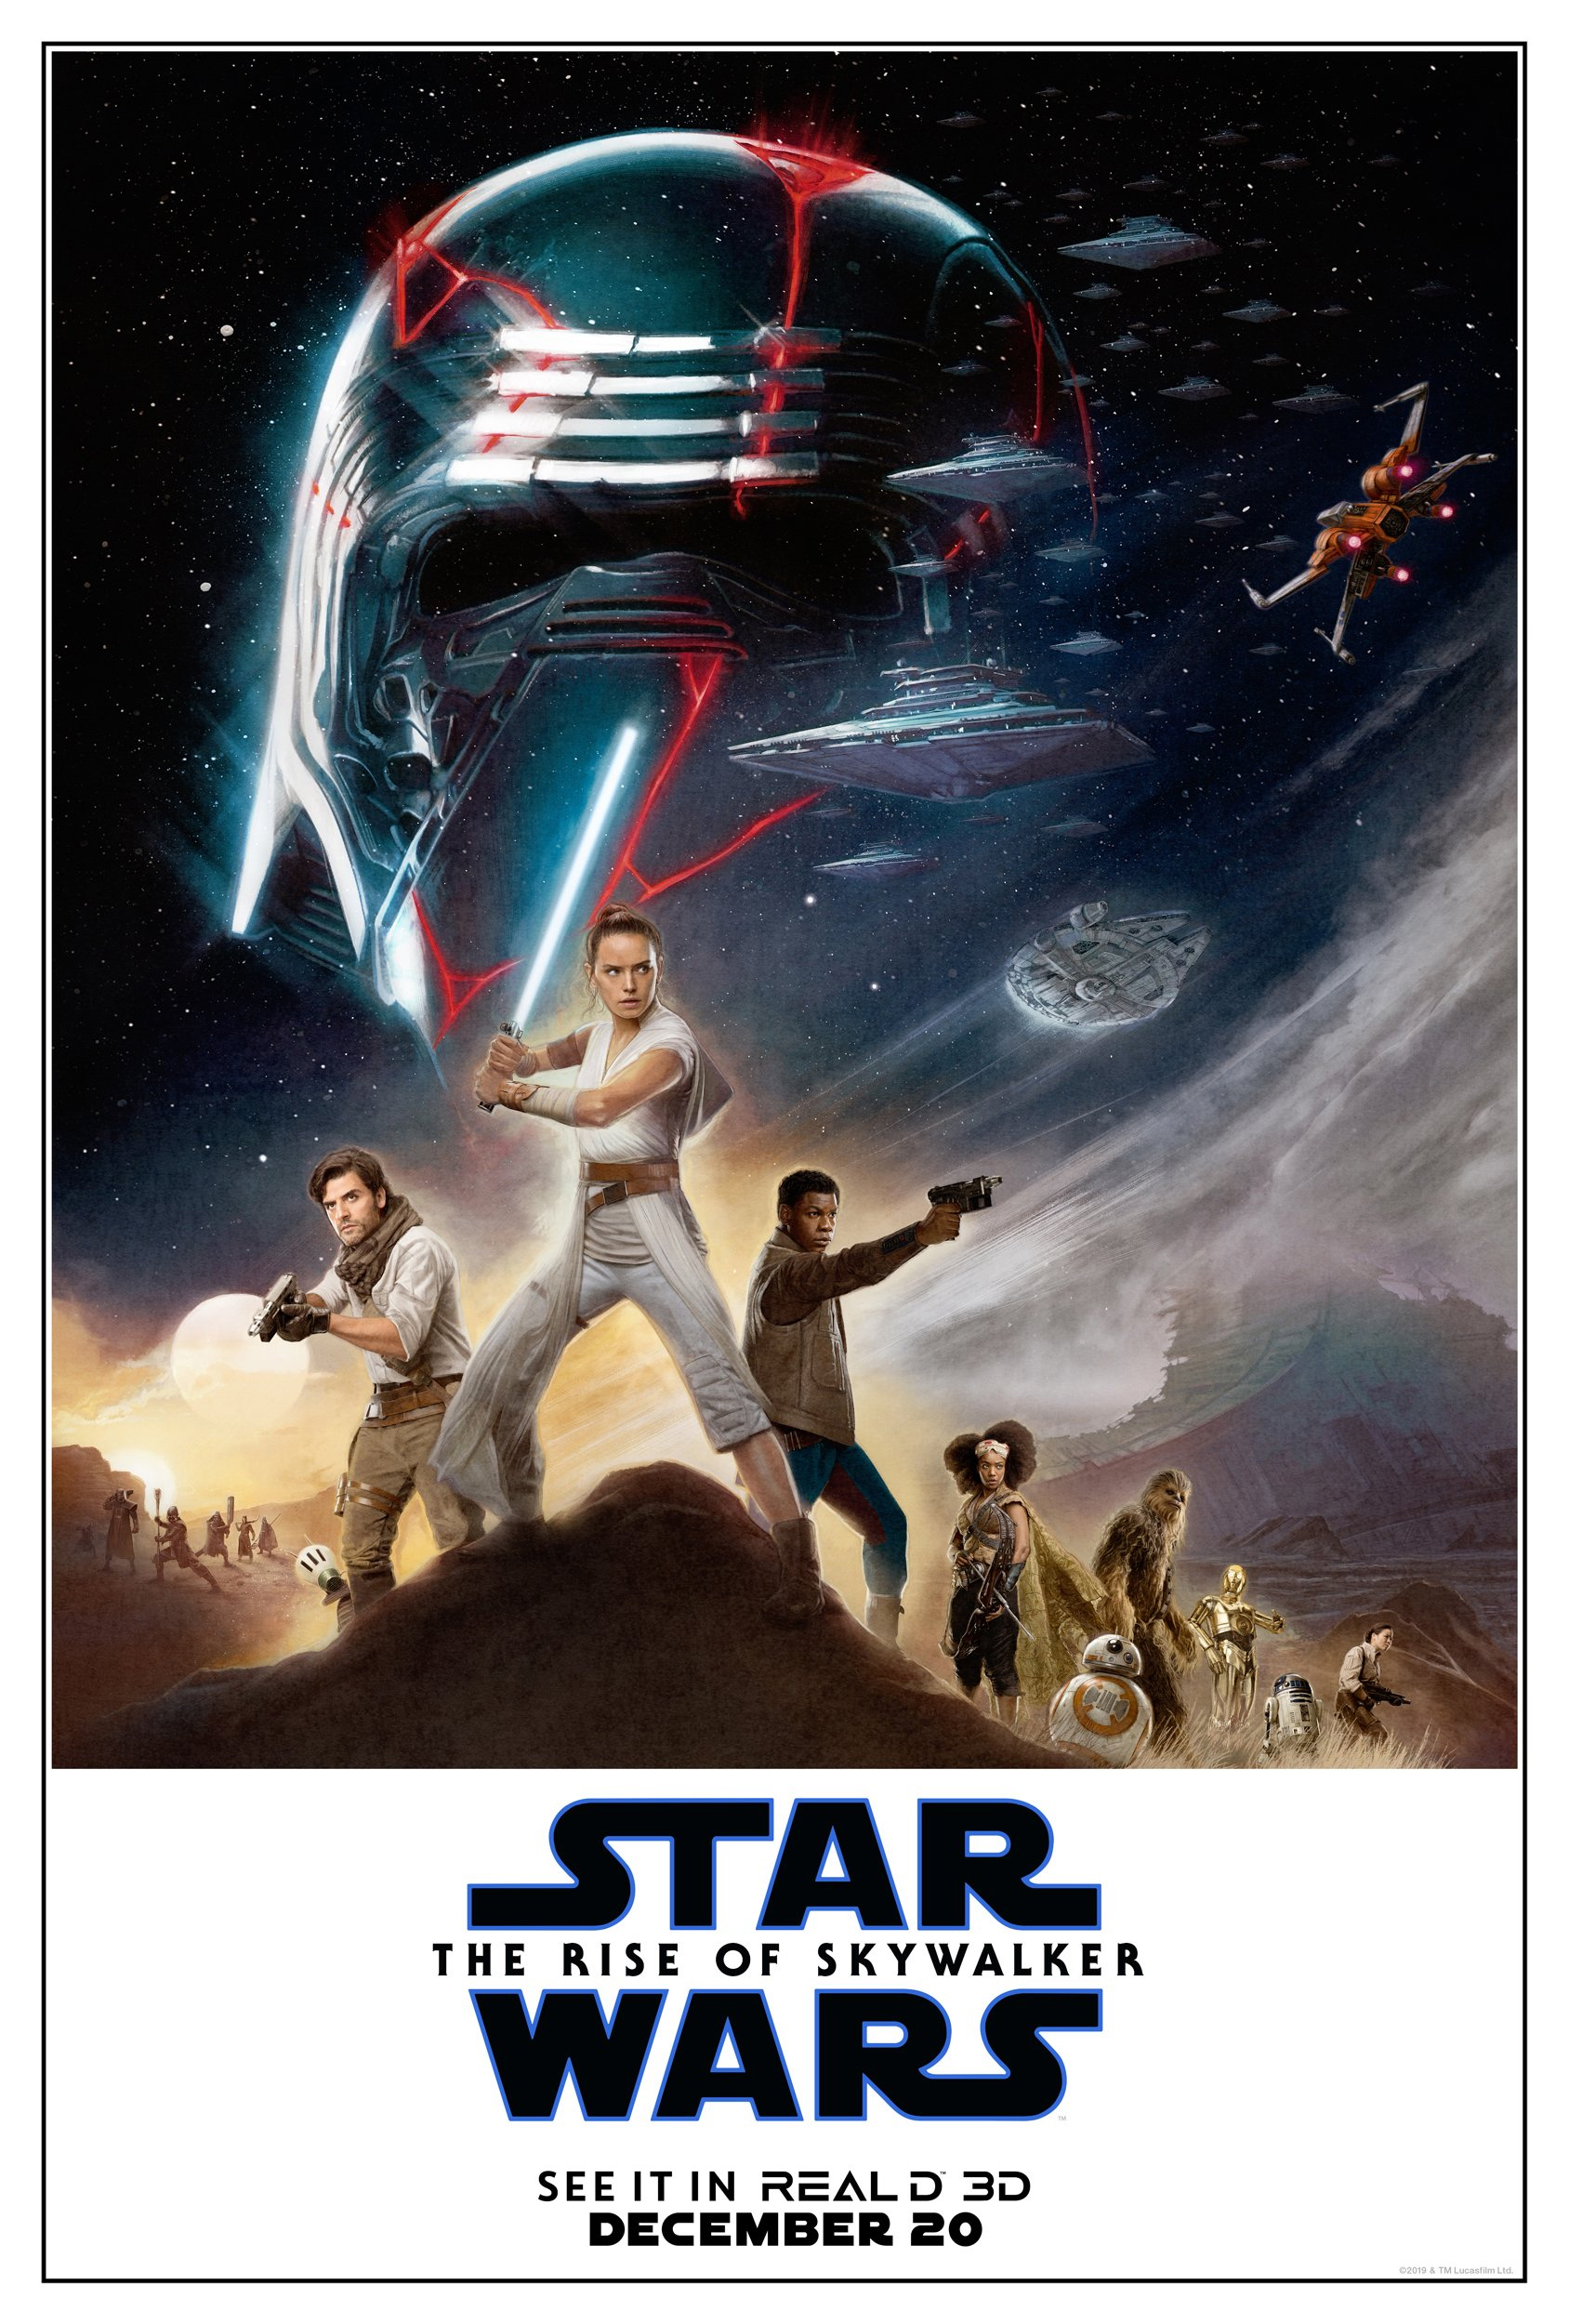 New Reald 3d Exclusive The Rise Of Skywalker Poster Revealed Jedi News